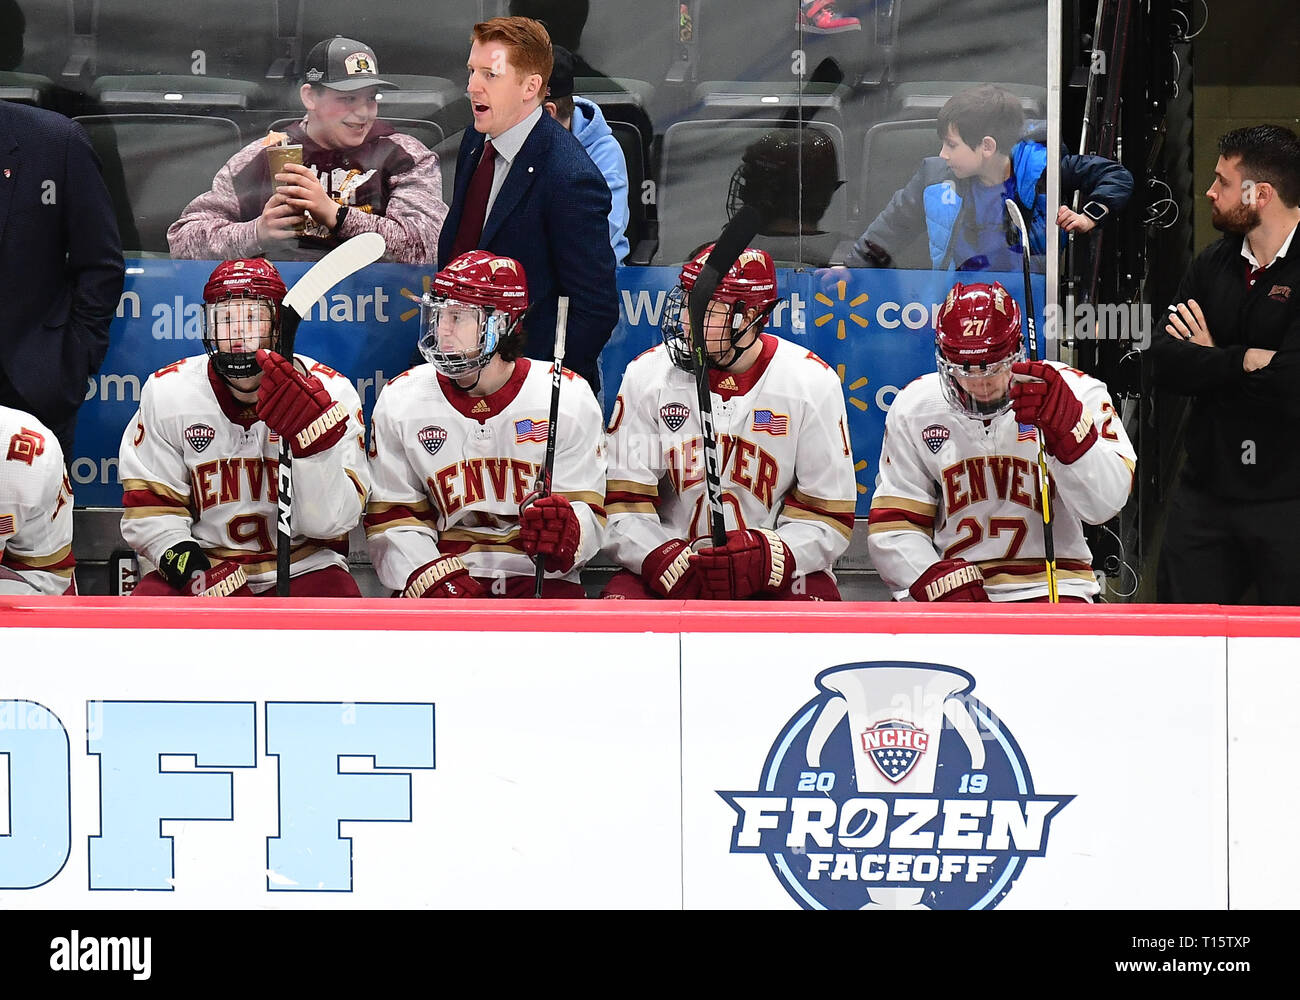 March 23, 2019 Denver head coach David Carle watches play during the NCHC Frozen Faceoff third place game between the Colorado College Tigers and the Denver Pioneers at the Xcel Energy Center, St. Paul, MN. Denver defeated Colorado College 6-1. Photo by Russell Hons/CSM - Stock Image